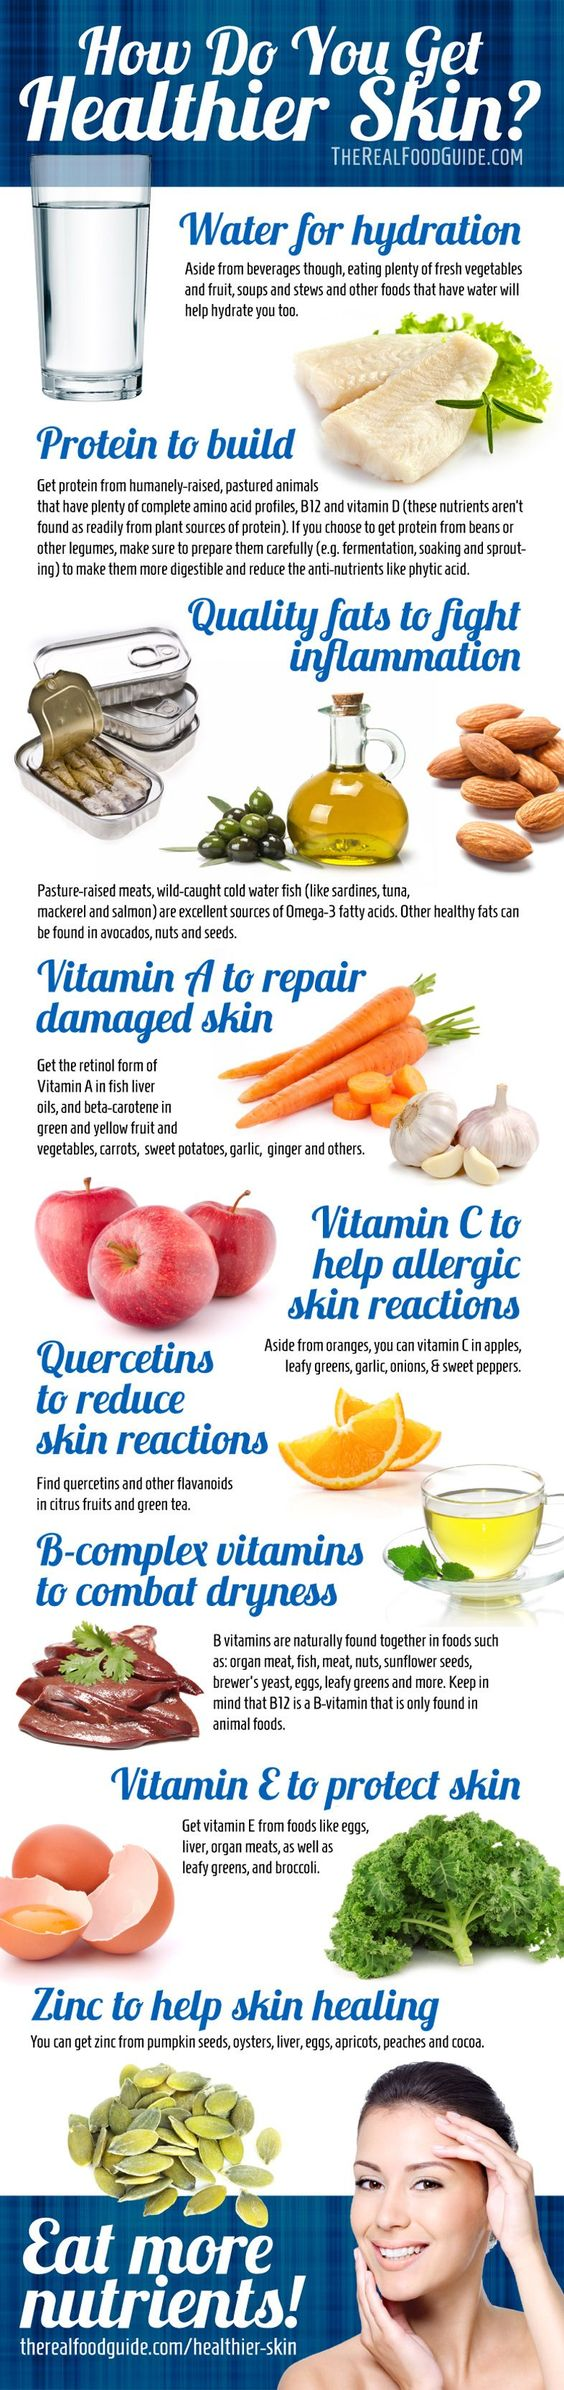 food for healthy skin